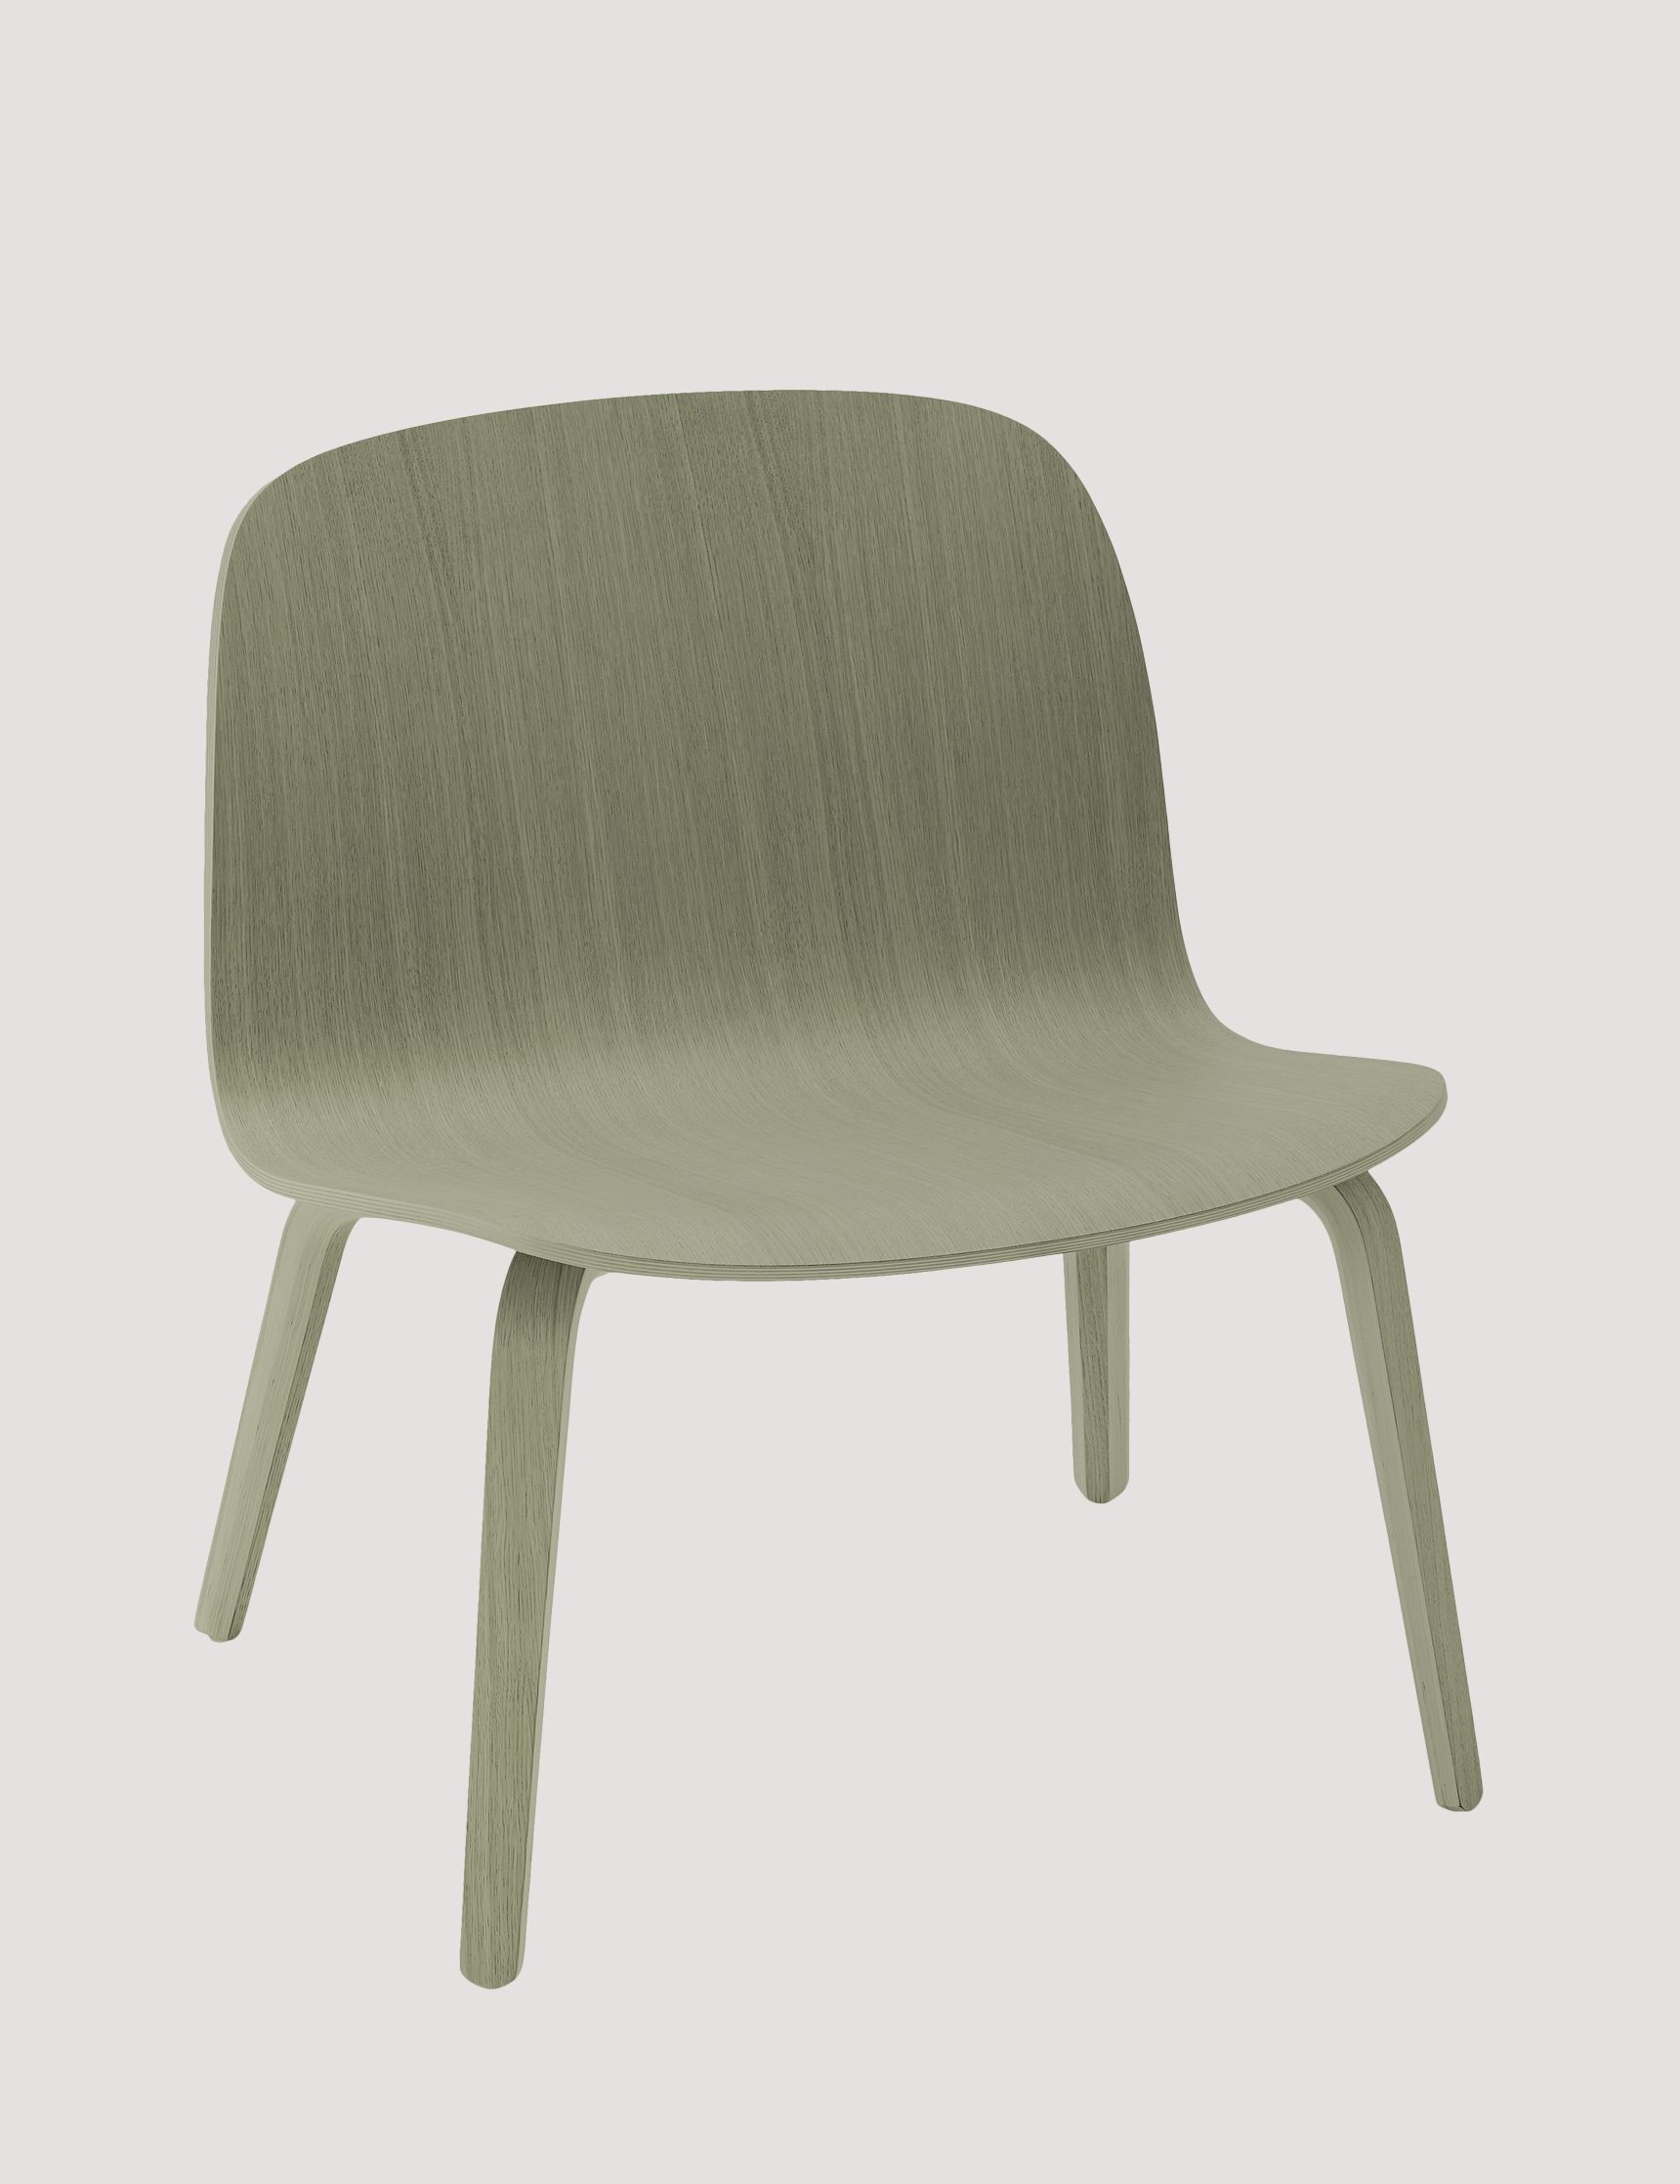 The VISU LOUNGE chair has a timeless and recognizable profile and is designed for lounging in the upmost comfort. Here in the colour dusty green - designed by Mika Tolvanen